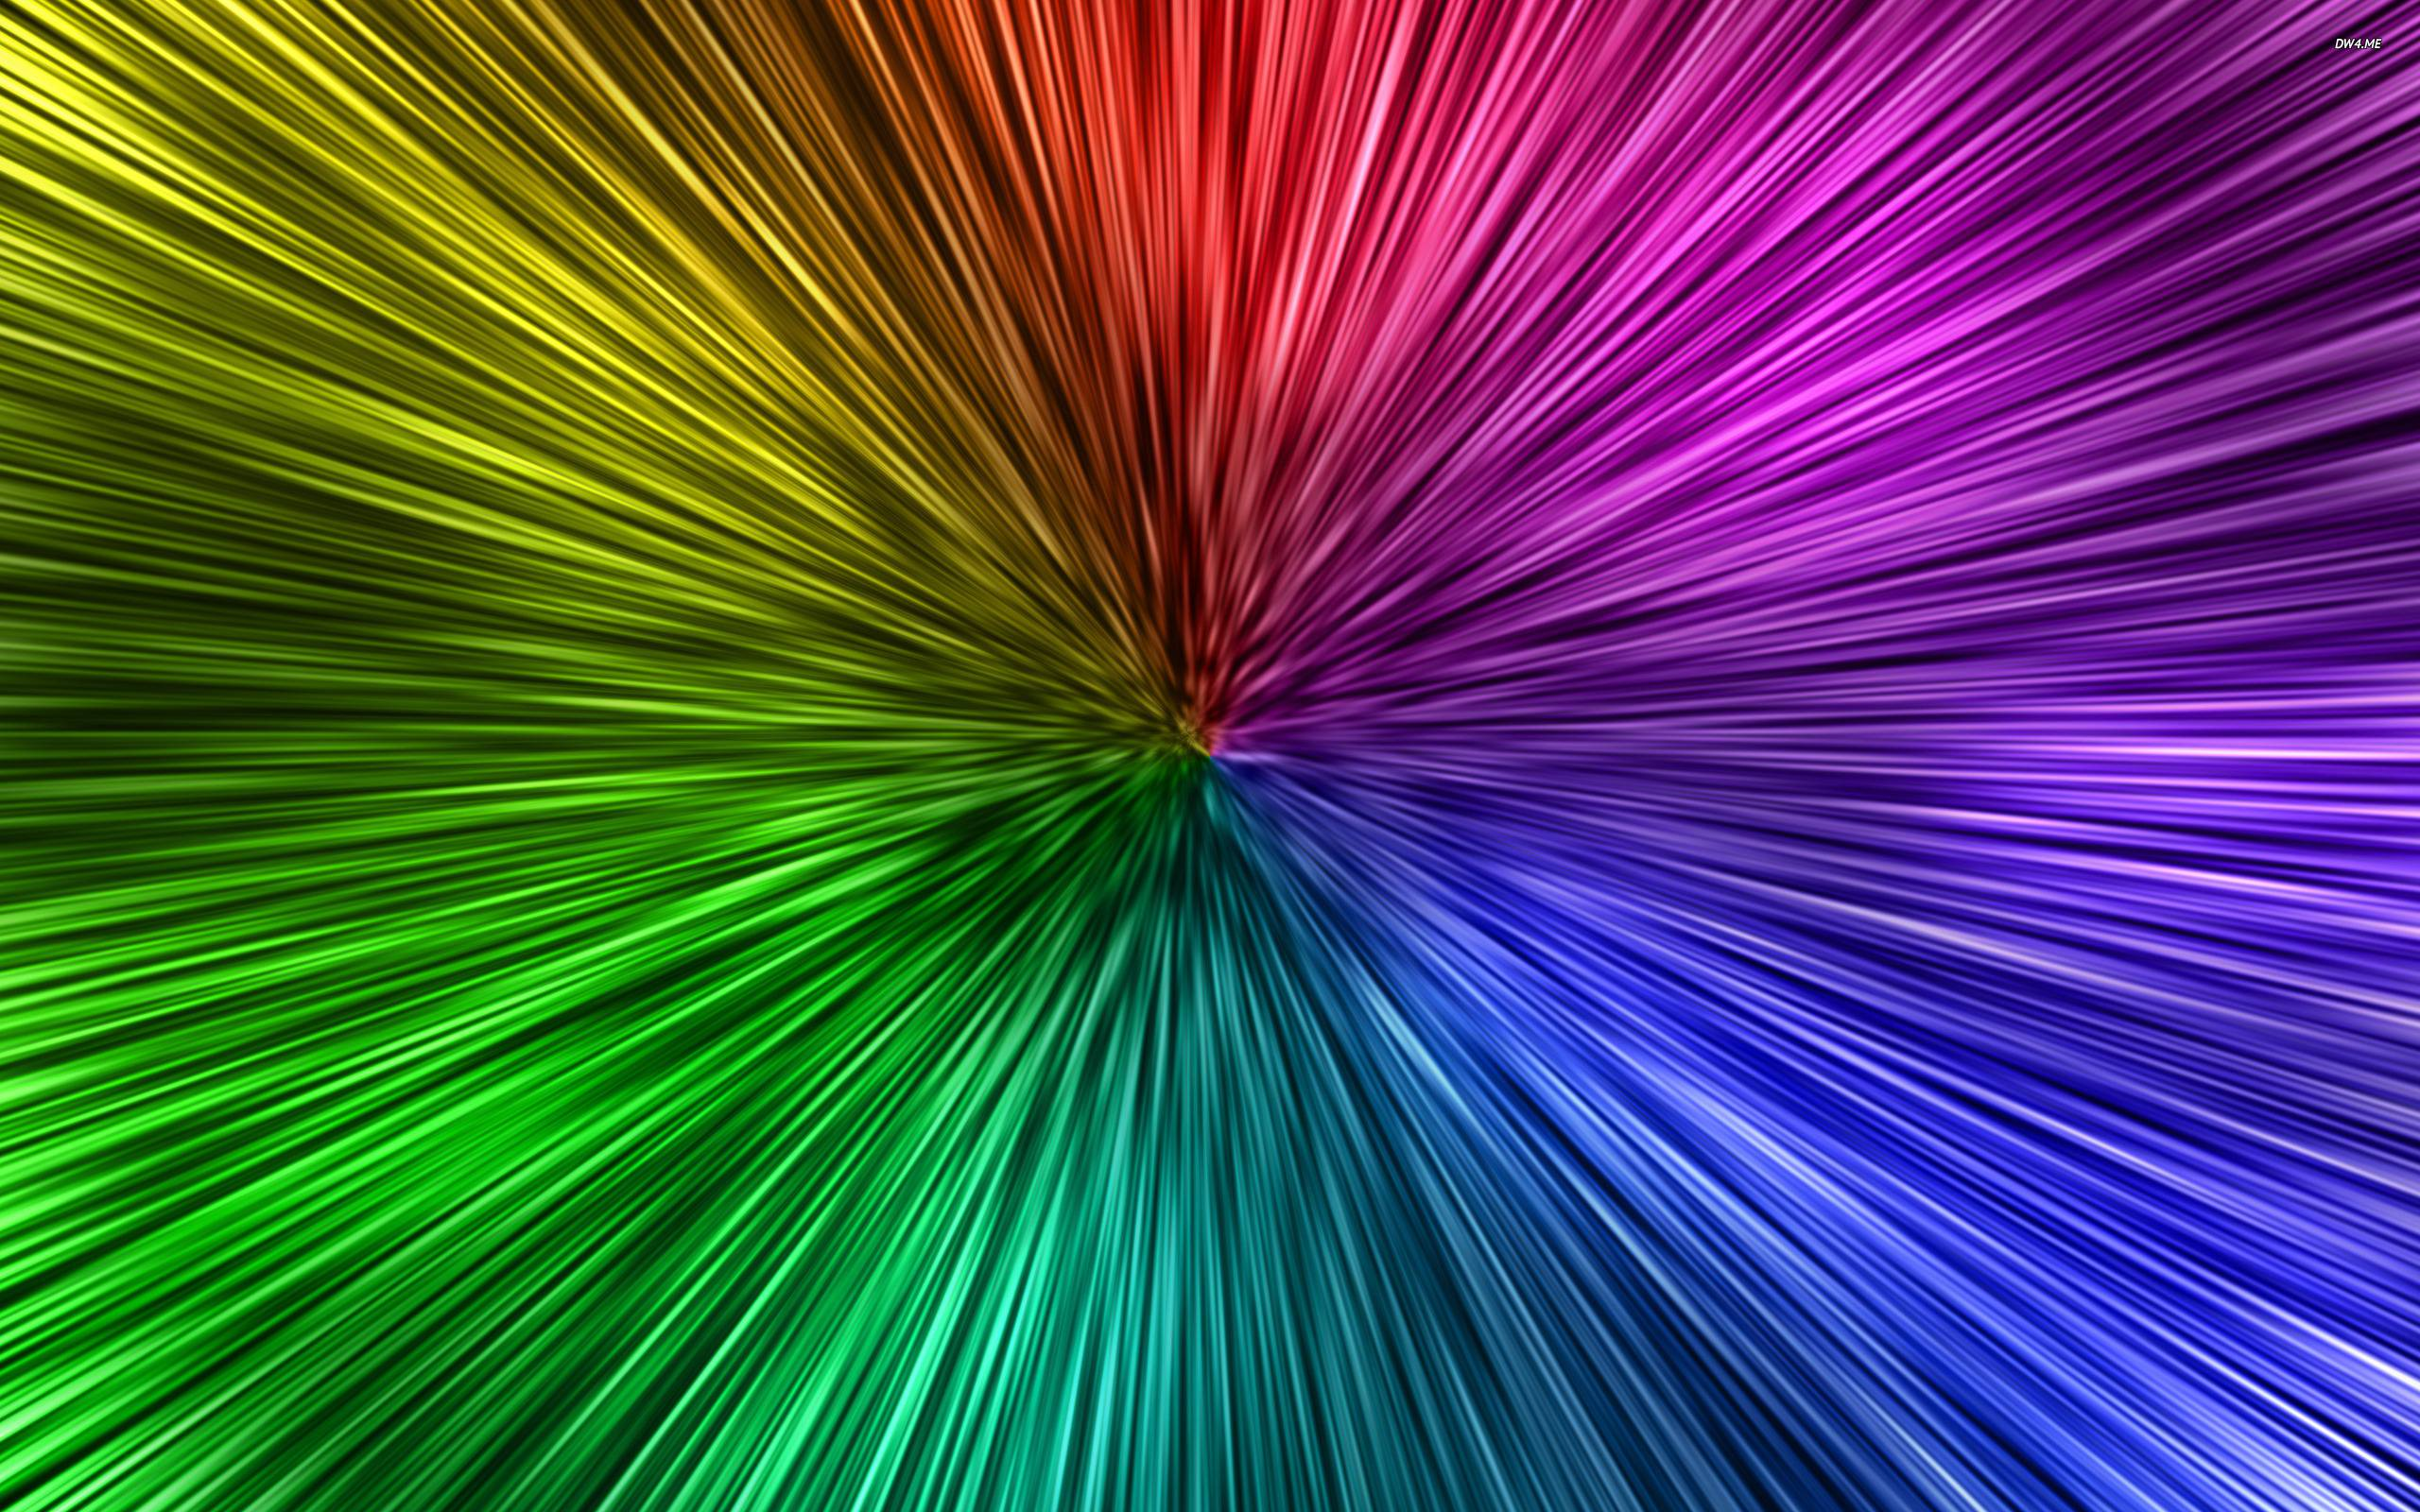 Abstract Neon Wallpaper Background 12 Jpg